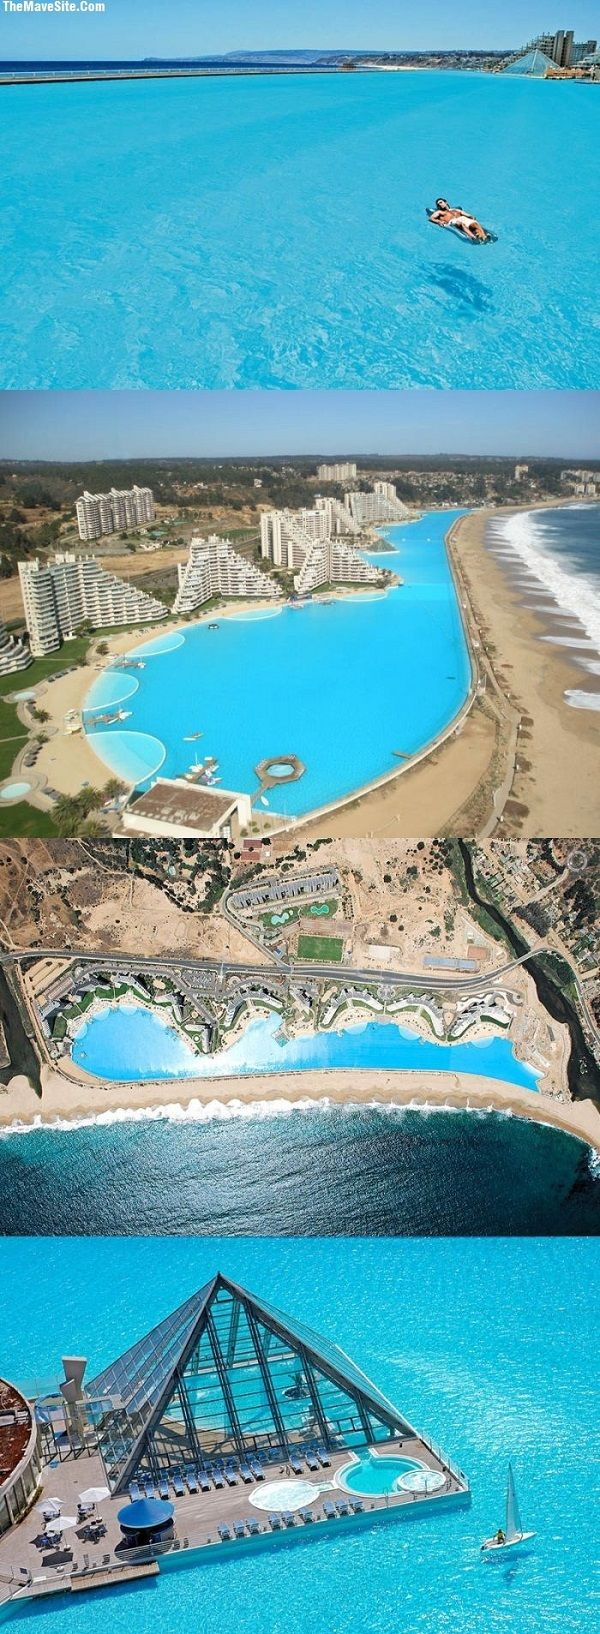 Incredible algarrobo chile world 39 s largest swimming - The biggest swimming pool in chile ...